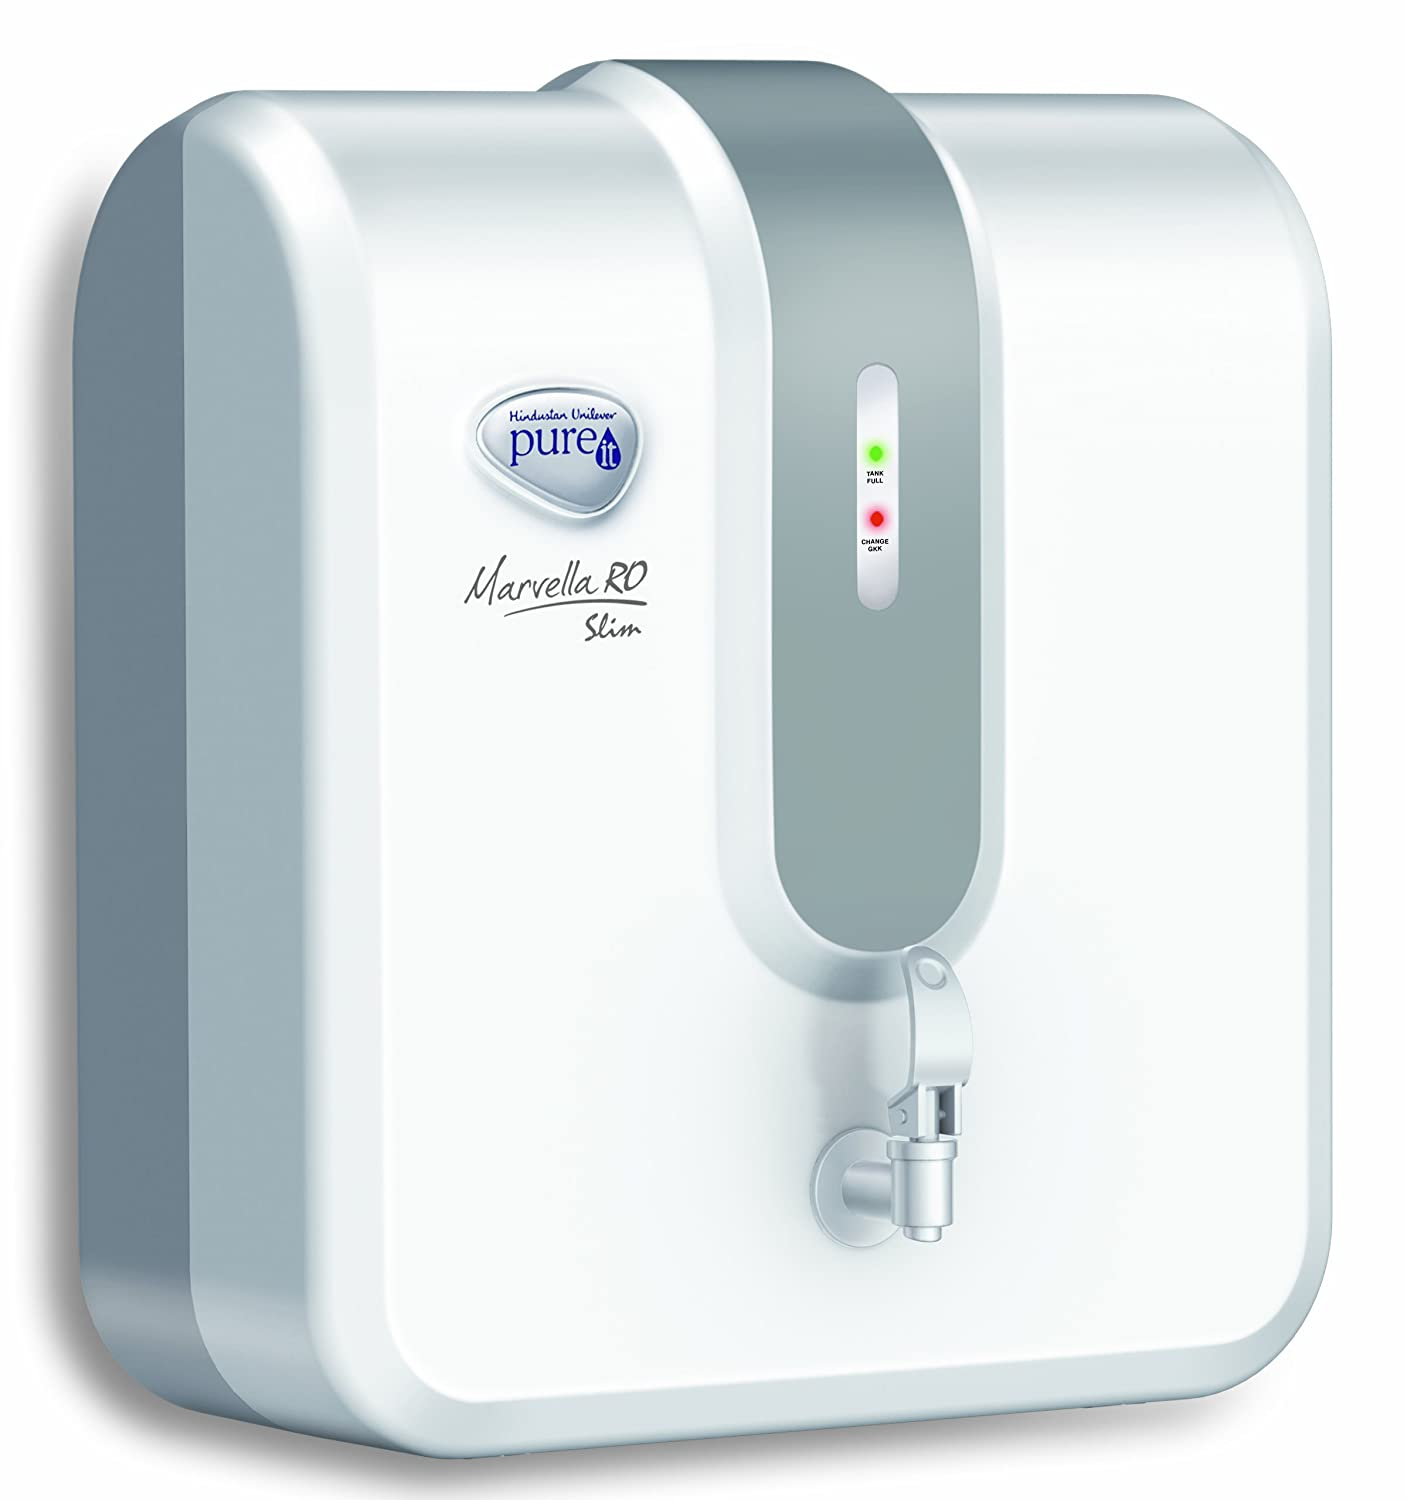 water purifiers in india List of top 10 best ro water purifiers in india for home during 2017-18 from leading brands like kent, aquaguard, pureit, livpure, tata swach etc compare features, reviews, price etc in detail.